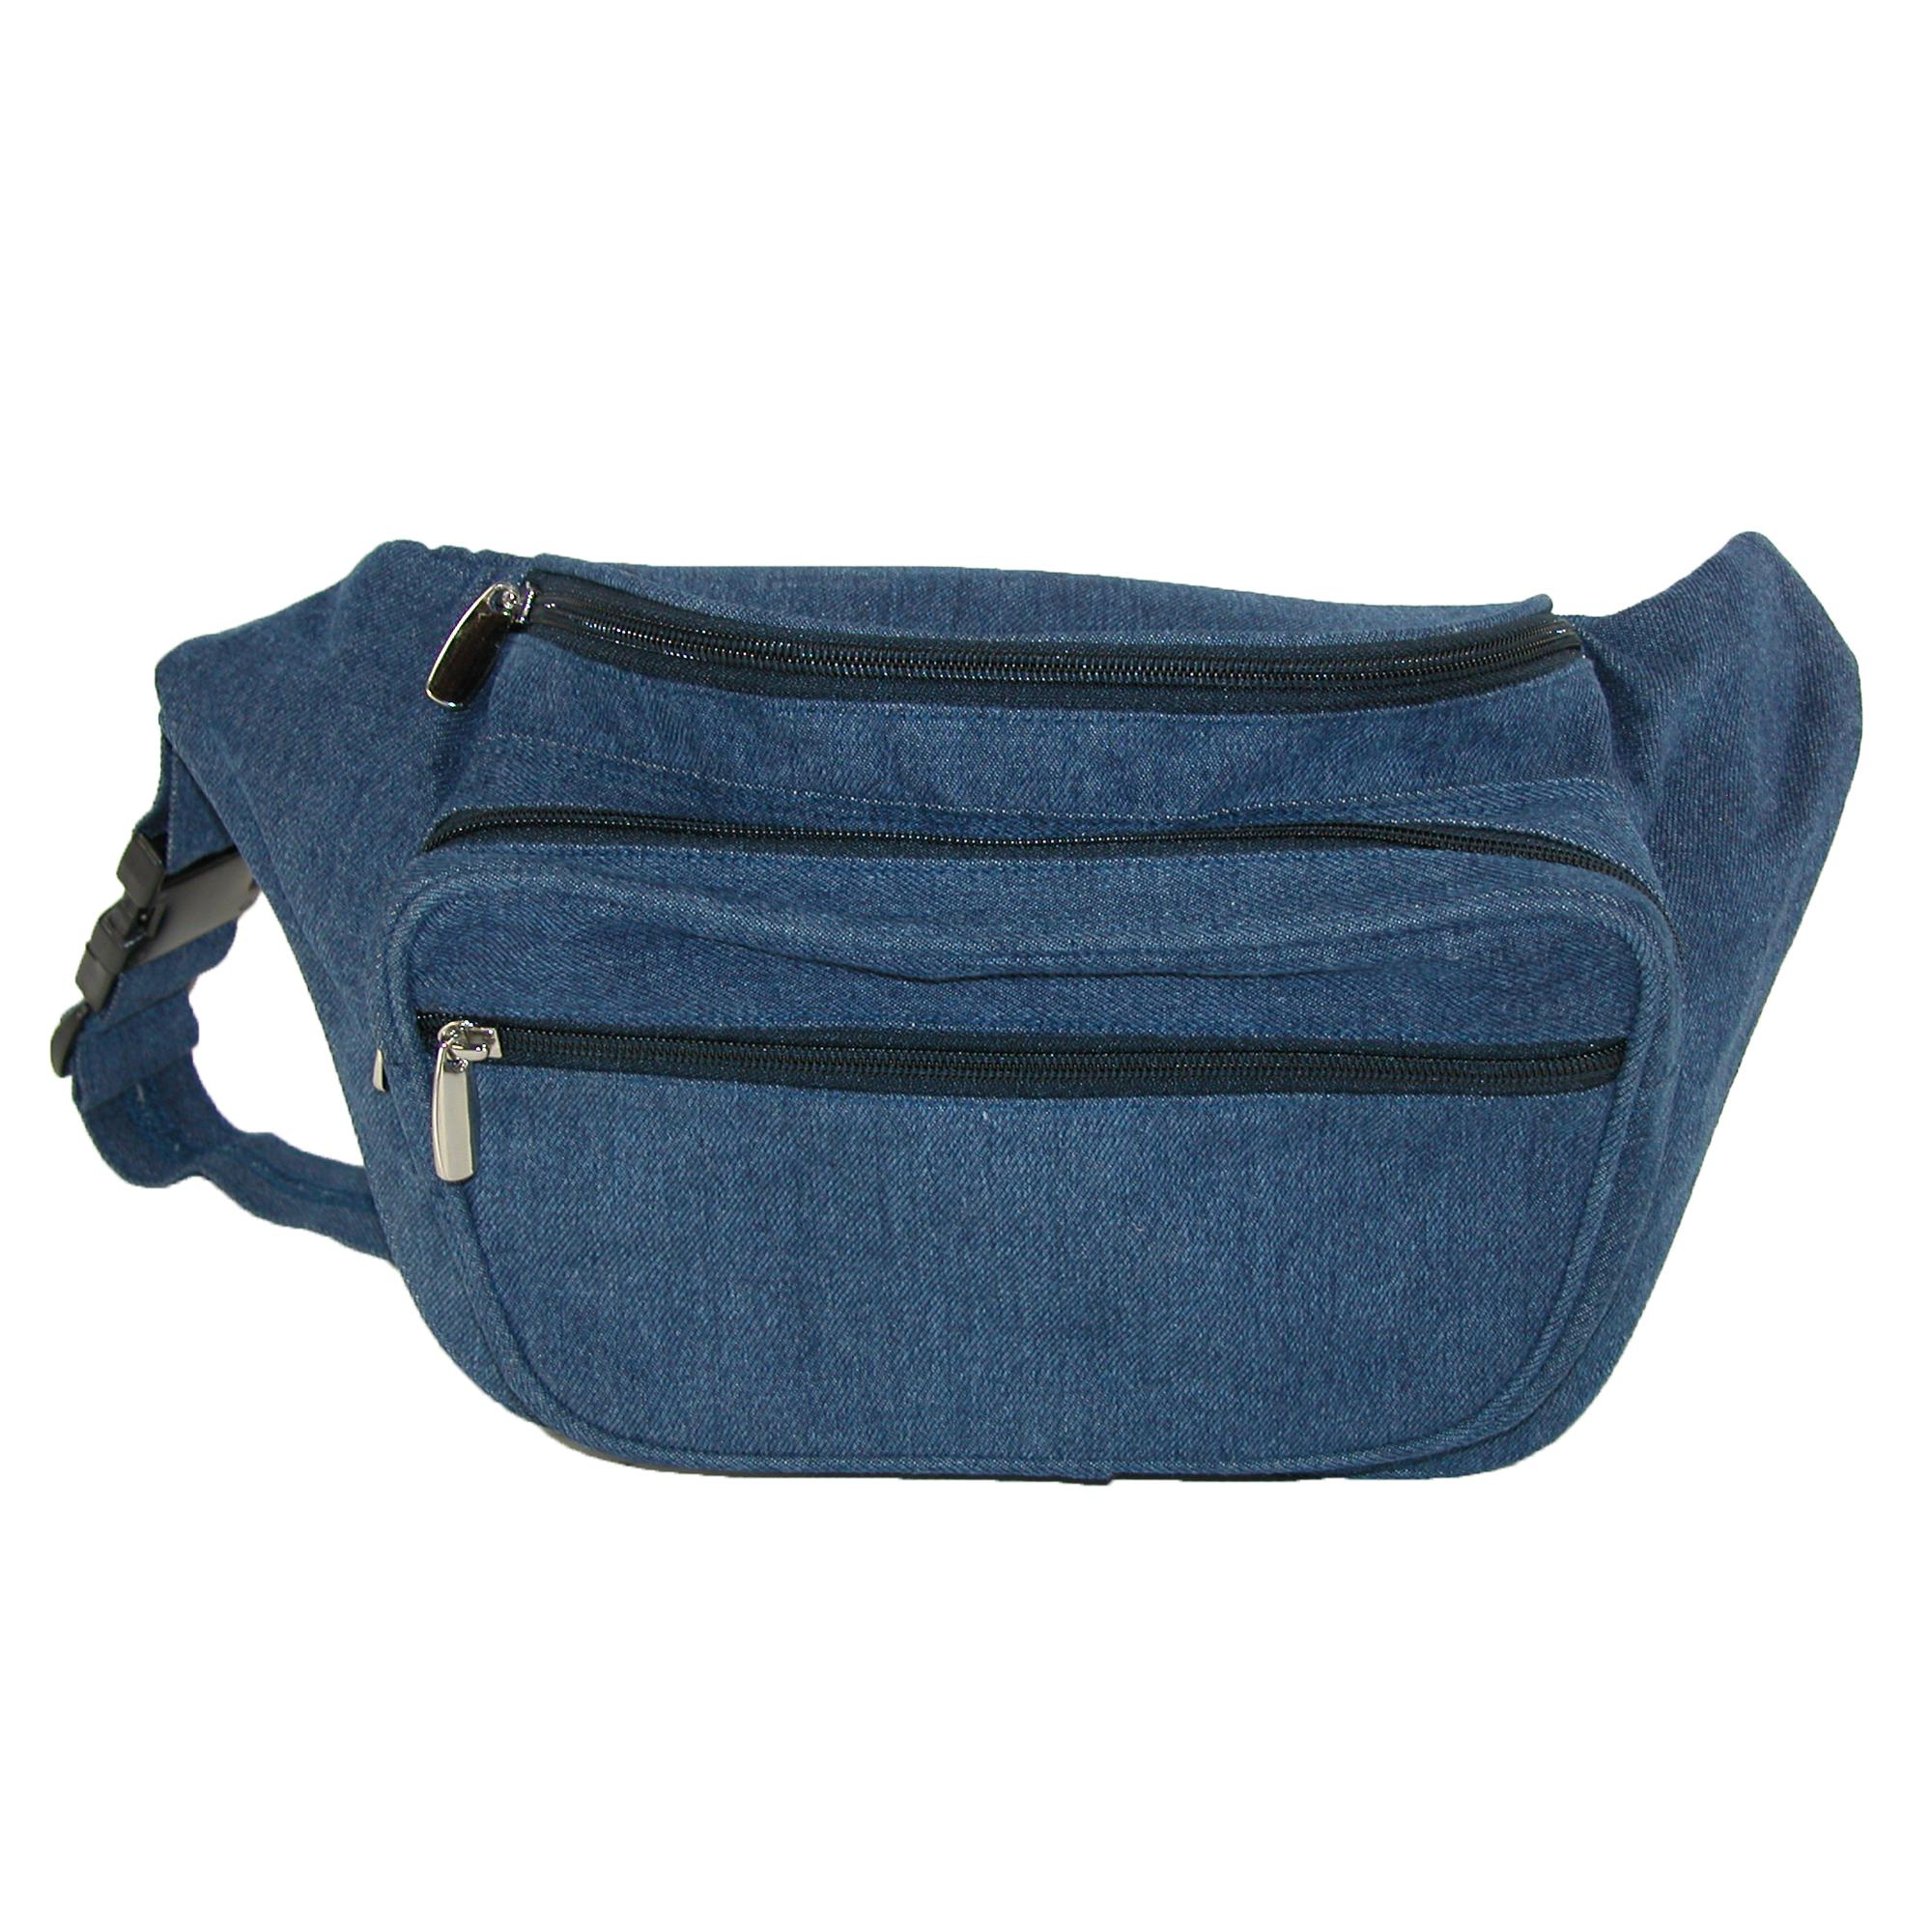 Magnifique_Denim_Large_Waist_Pack__Blue_One_Size